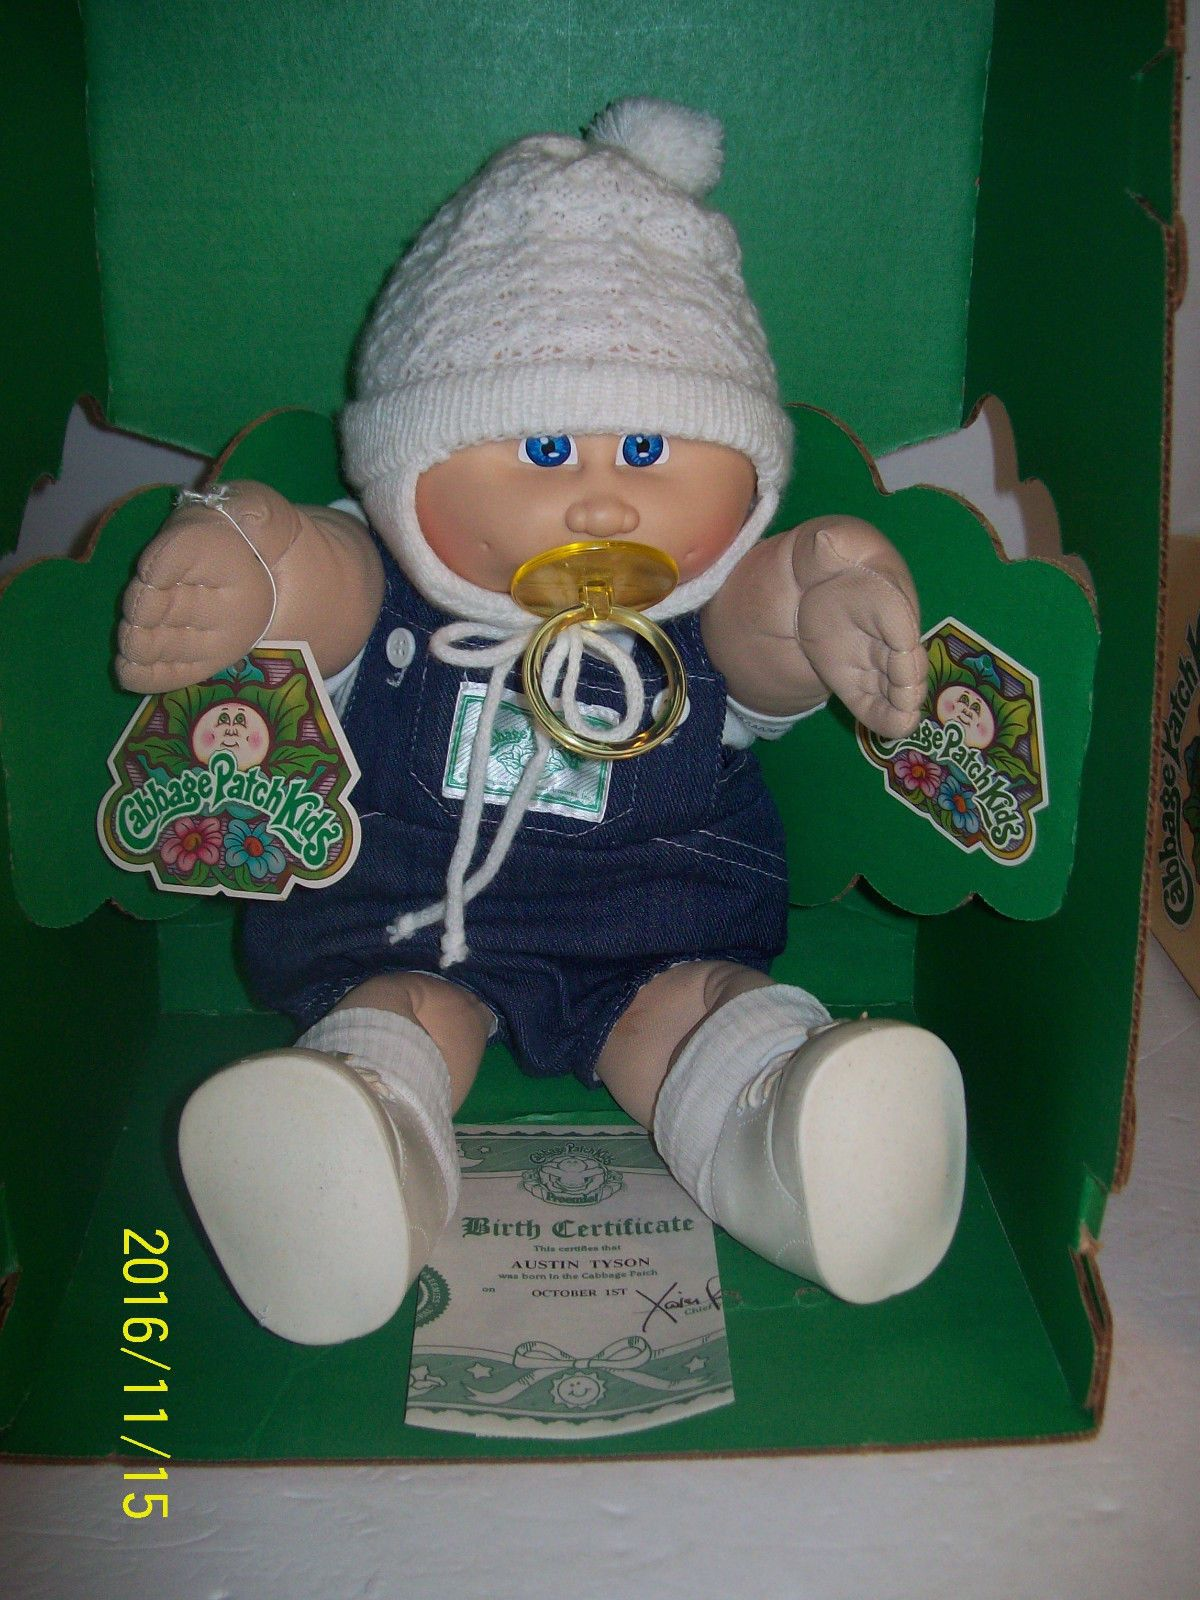 Vintage 1983 Cabbage Patch Kids Boy Preemie Doll Pacifier Hat Papers In Box Vintage Cabbage Patch Dolls Cabbage Patch Babies Cabbage Patch Kids Dolls